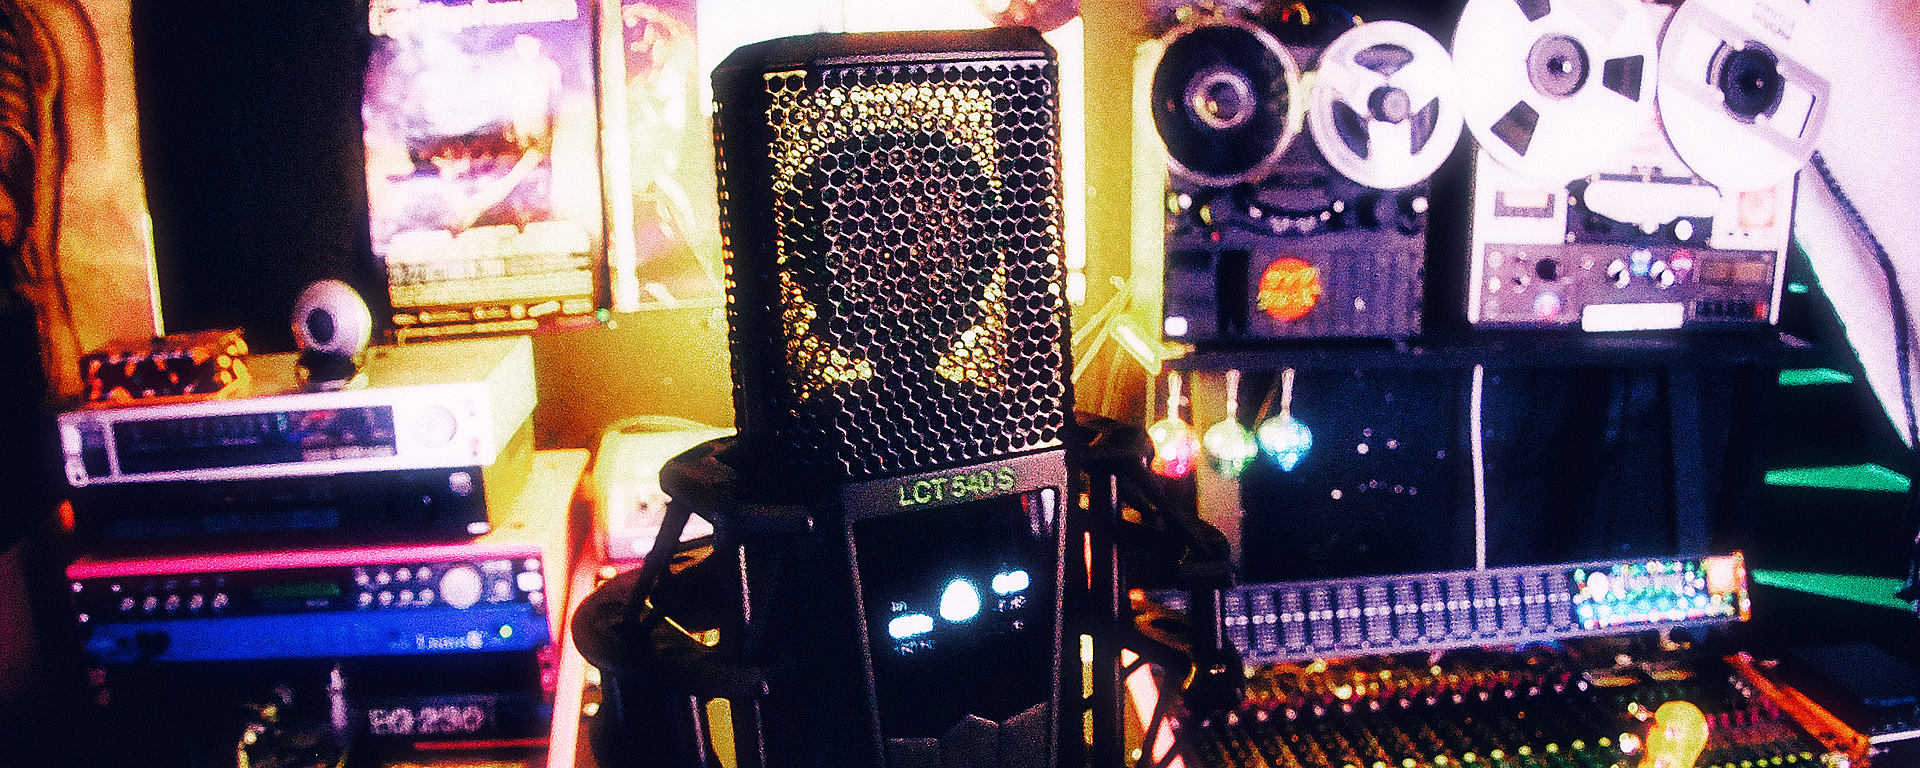 LCT 540 S best studio microphone